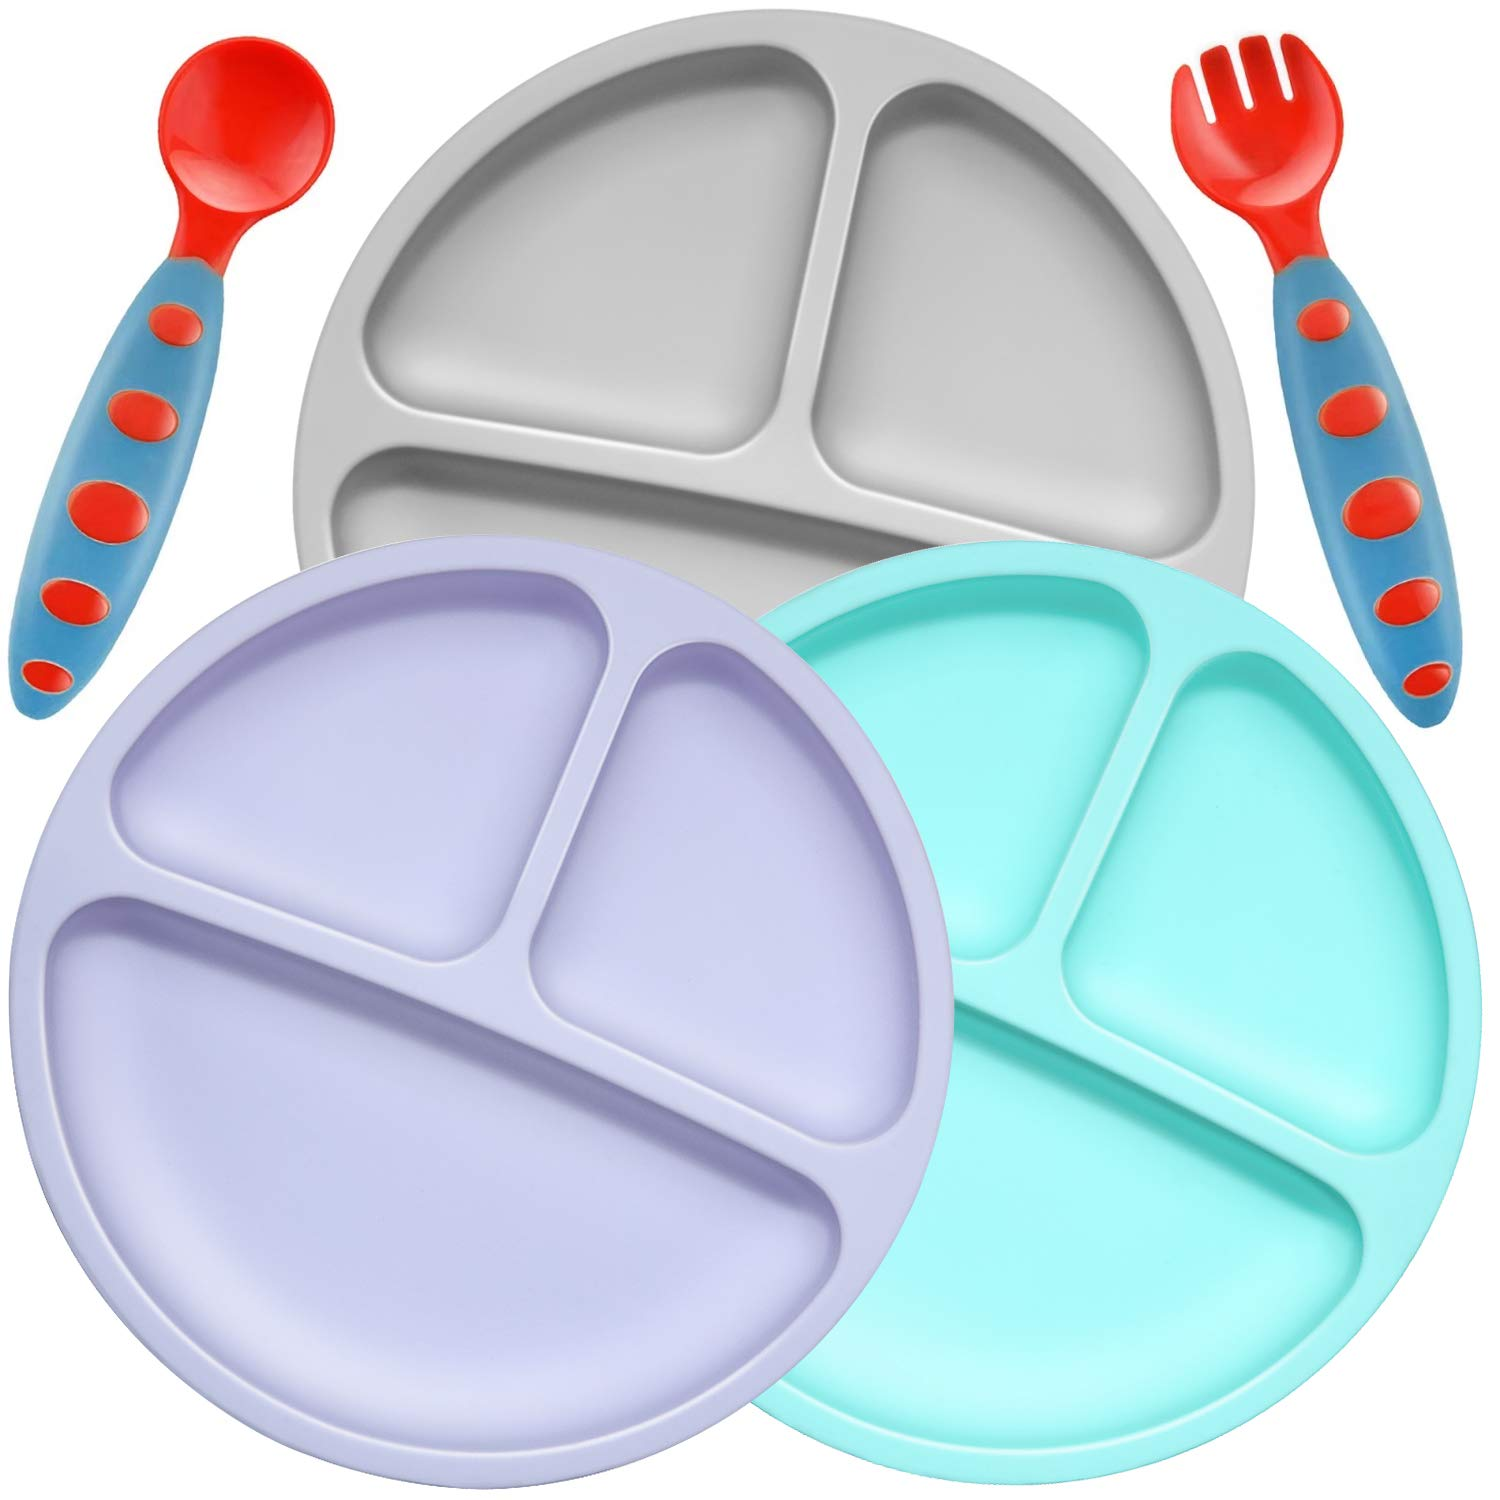 PandaEar Divided Unbreakable Silicone Baby and Toddler Plates - 3 Pack - Non-Slip (NO Suction) Dishwasher and Microwave Safe Silicone Blue Purple Grey